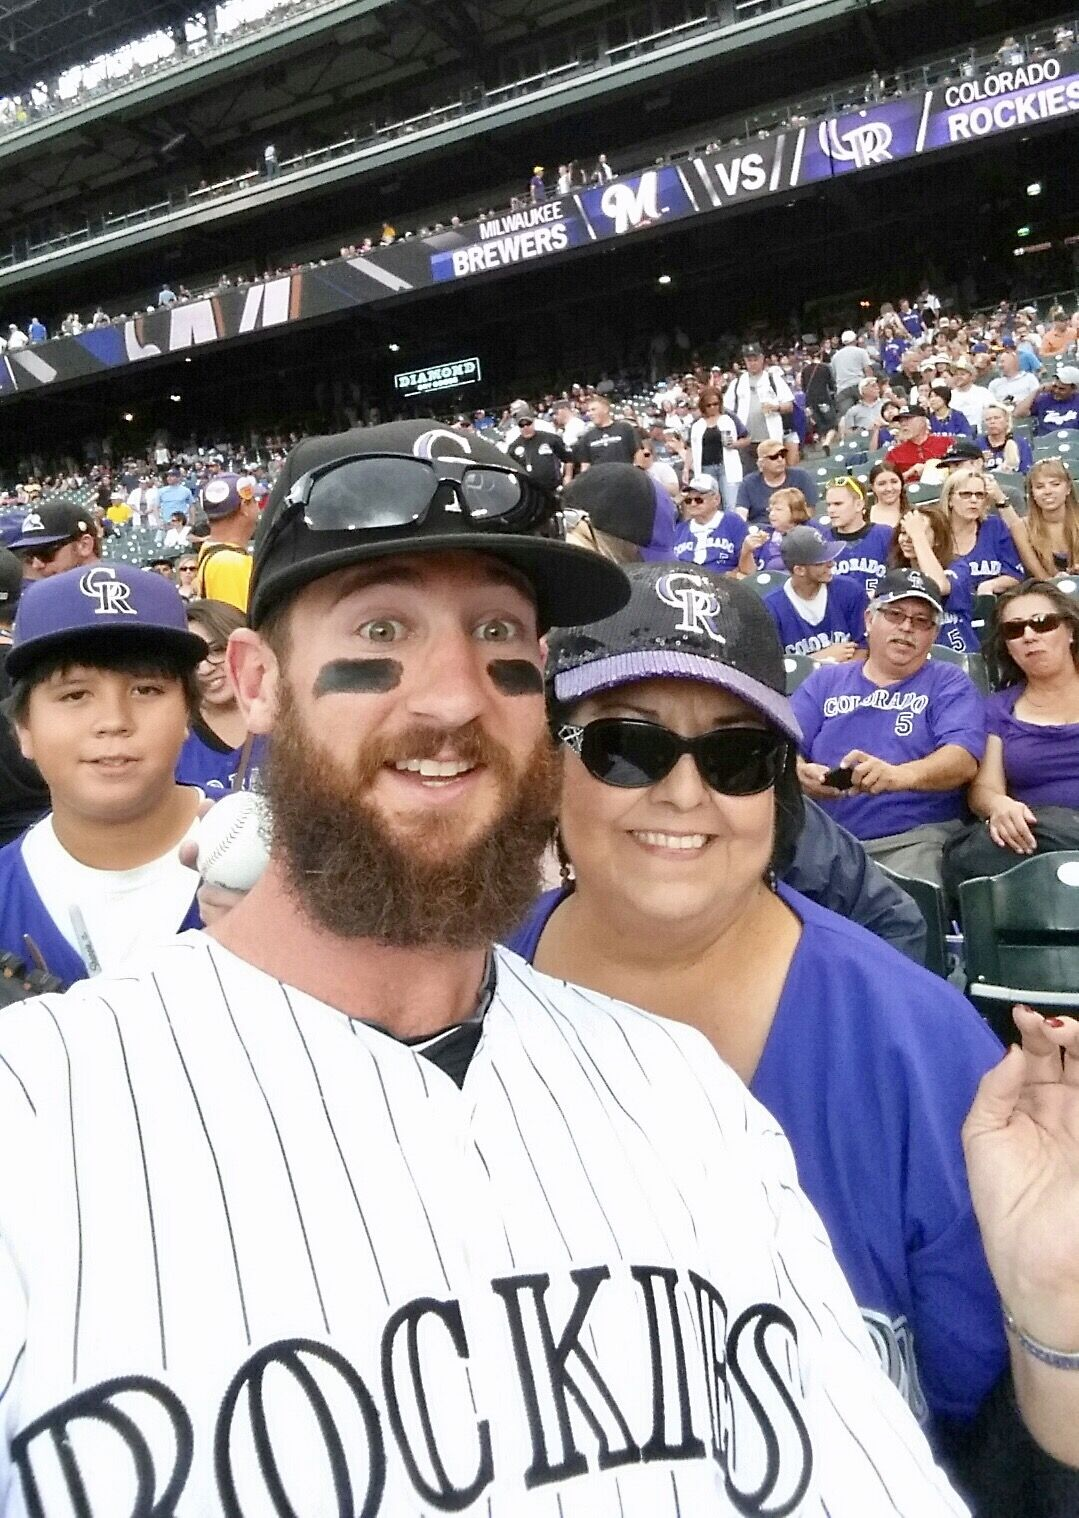 Charlie Blackmon And Rockies Fans Colorado Rockies Baseball Rockies Baseball Co Rockies